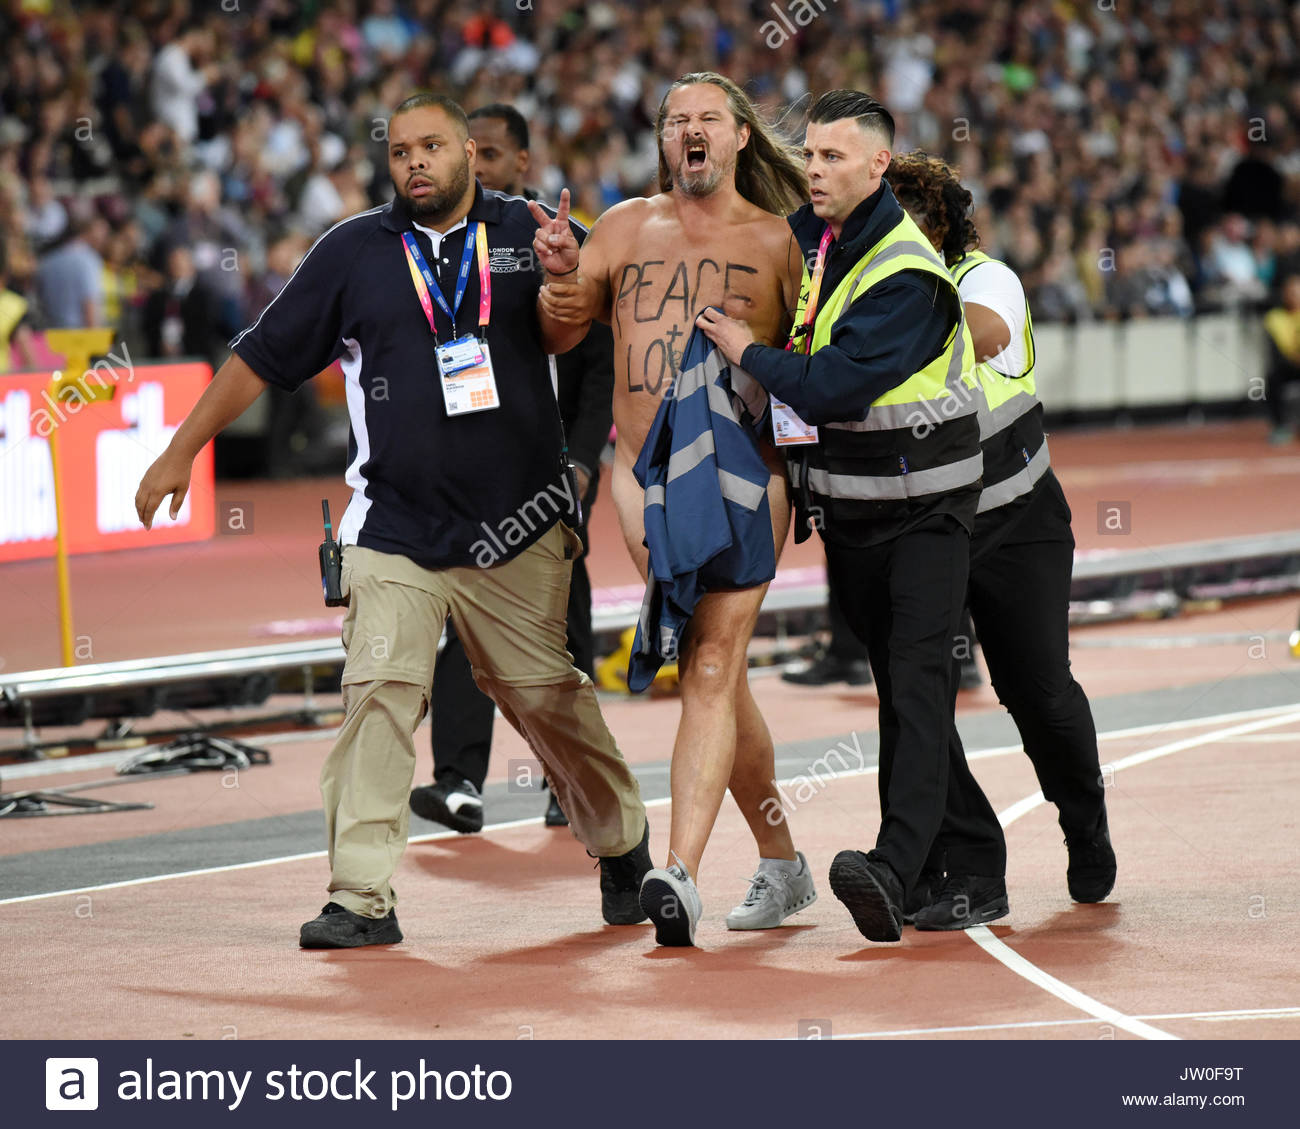 London, UK. 05 Aug, 2017. IAAF World Championships London 2017. - Stock Image